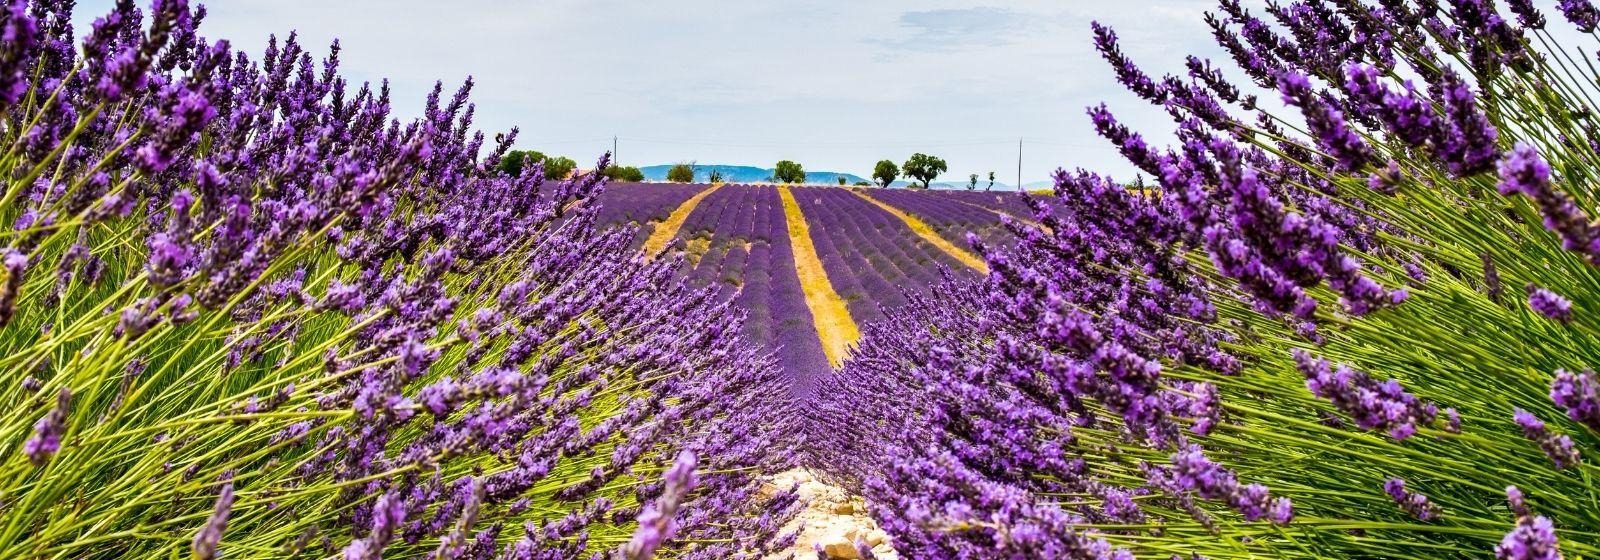 Things to do in Aix-en-Provence